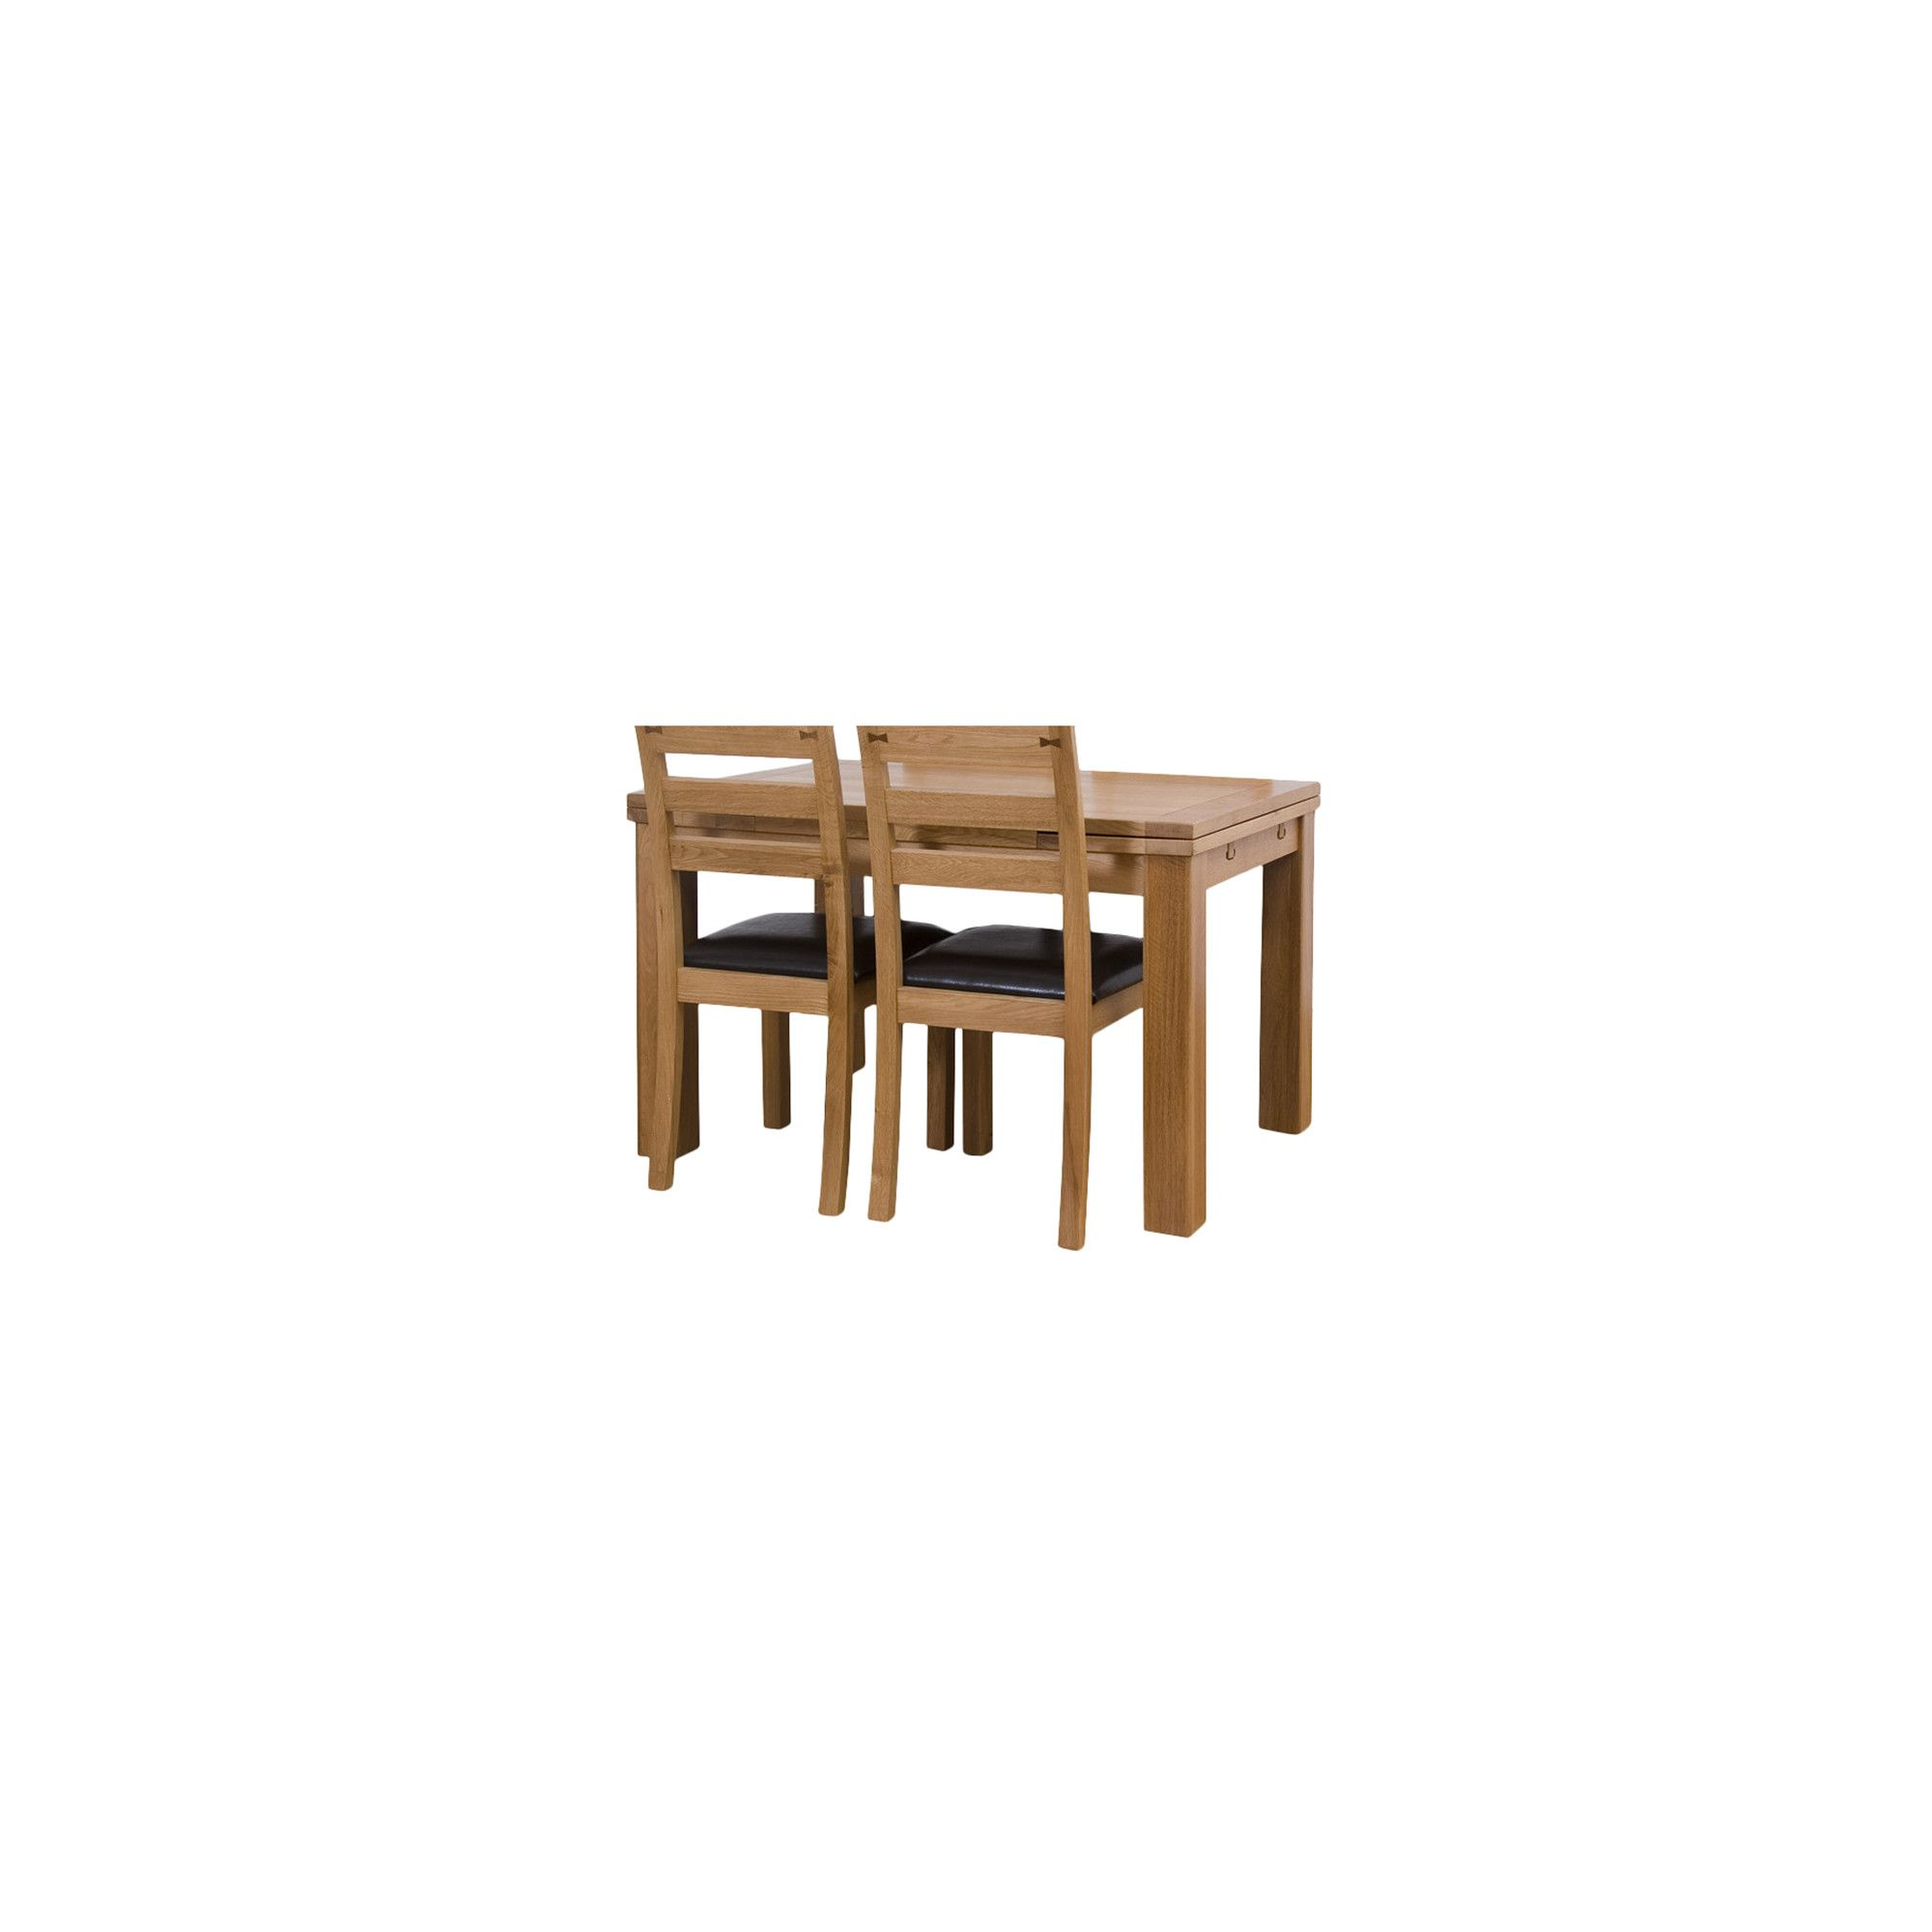 G&P Furniture Rectangular Extending Oak Dining Table - 76.2cm H x 120cm - 180cm W x 80cm D